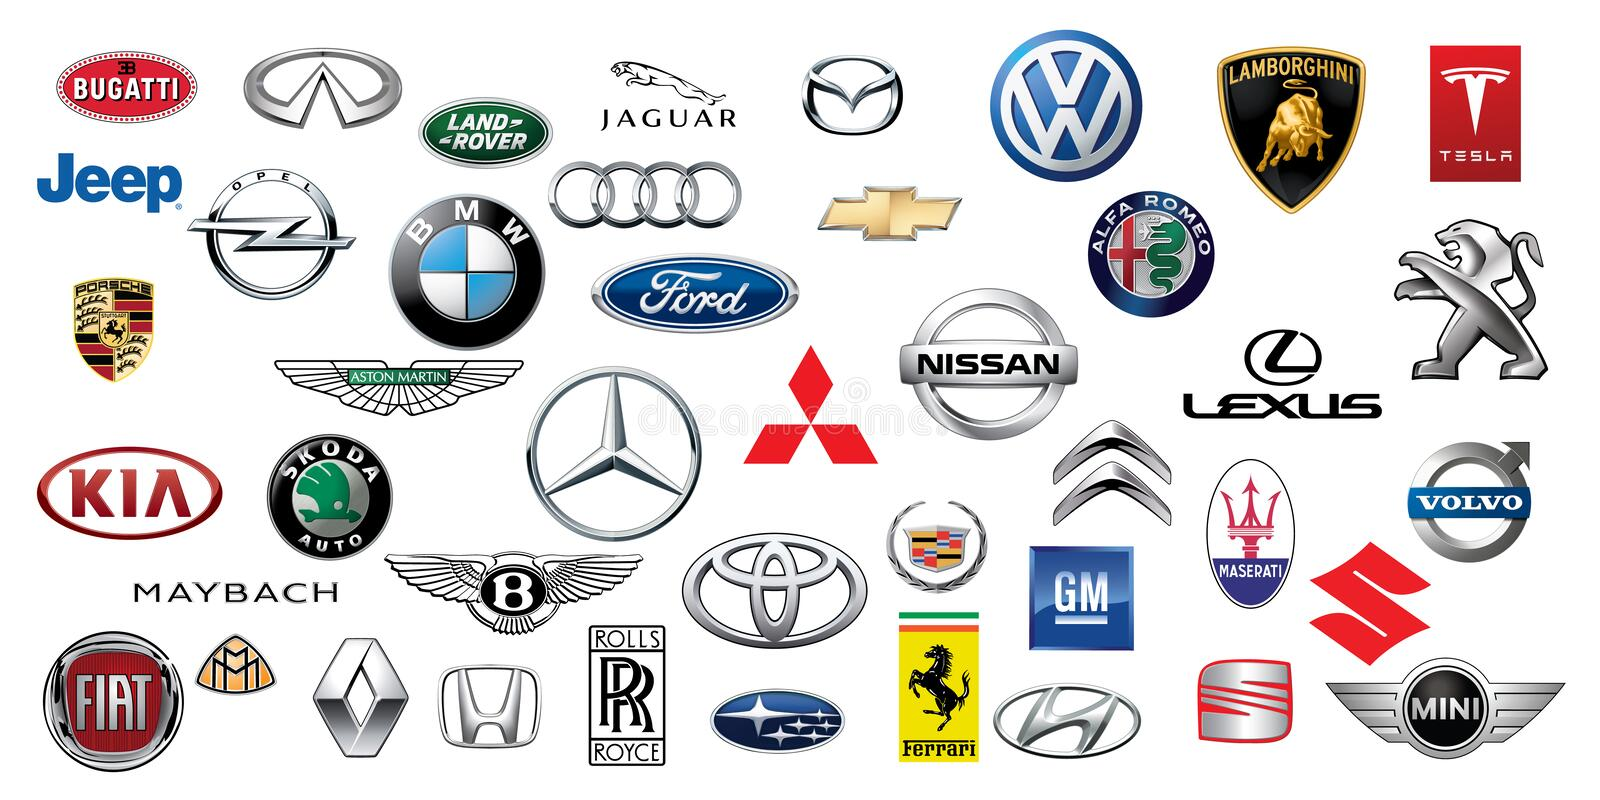 ZAPOROZHYE, UKRAINE - DECEMBER 20, 2017: Logos collection of different brands of cars, printed on paper vector illustration